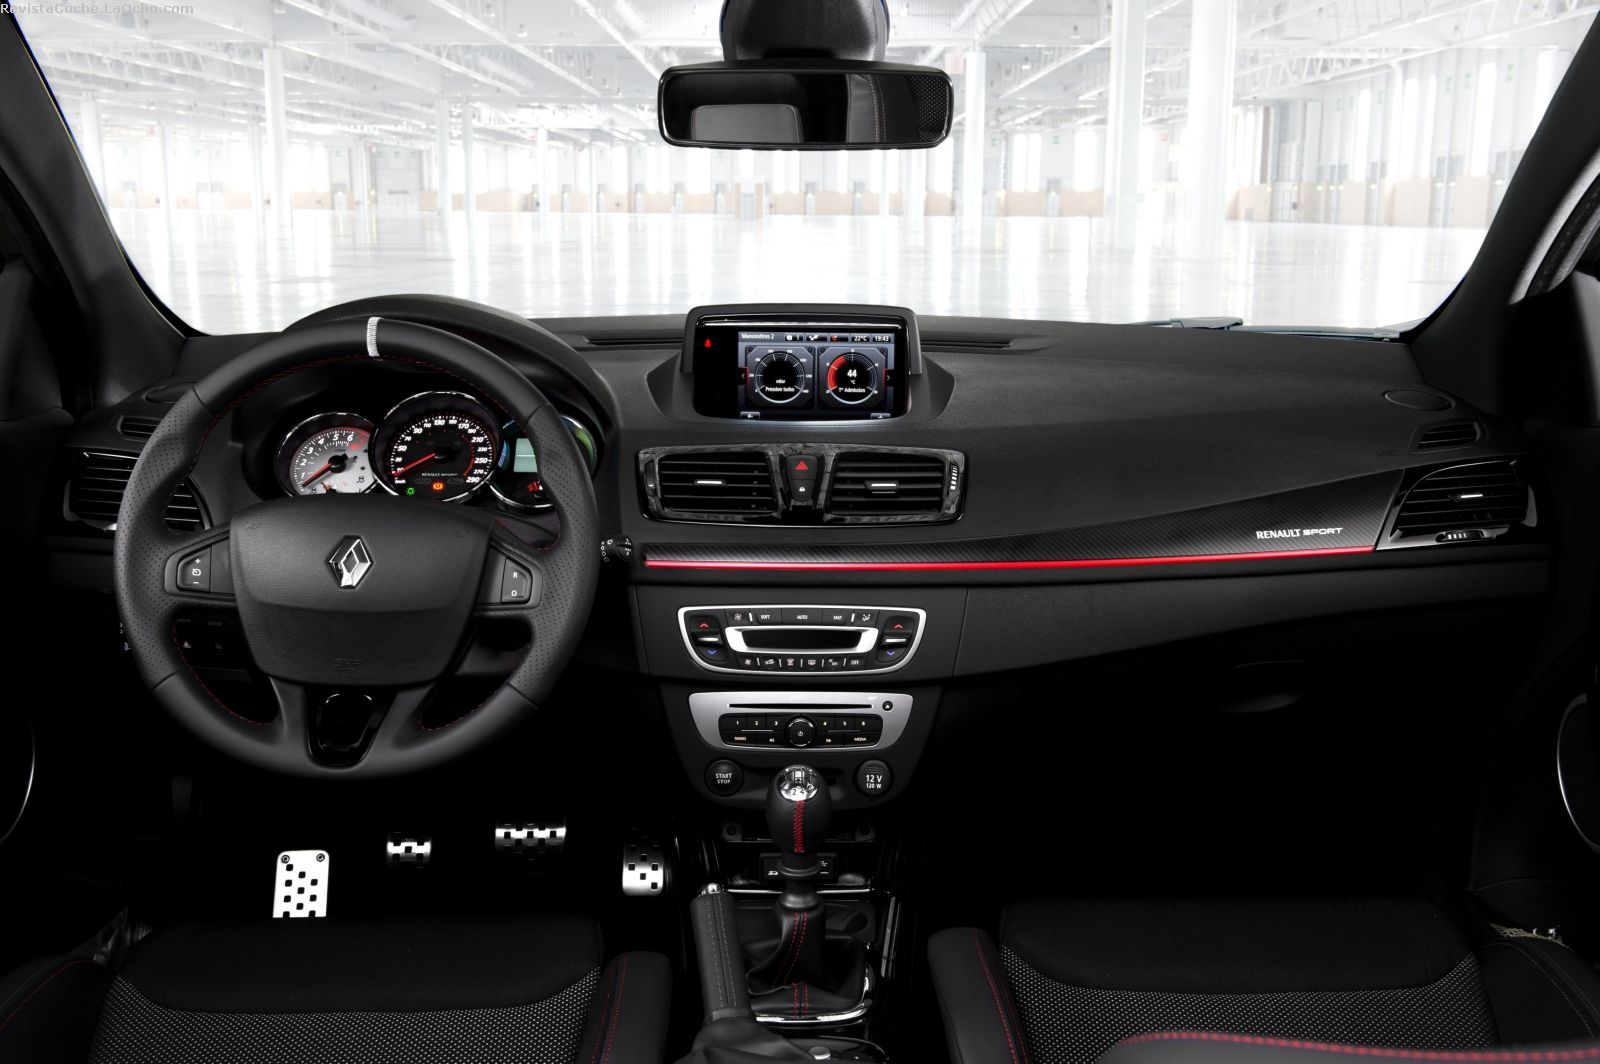 awesome-design-of-the-black-and-red-accent-dash-ideas-with-black-steering-wheels-as-the-renault-megane-hatch-2016-interior